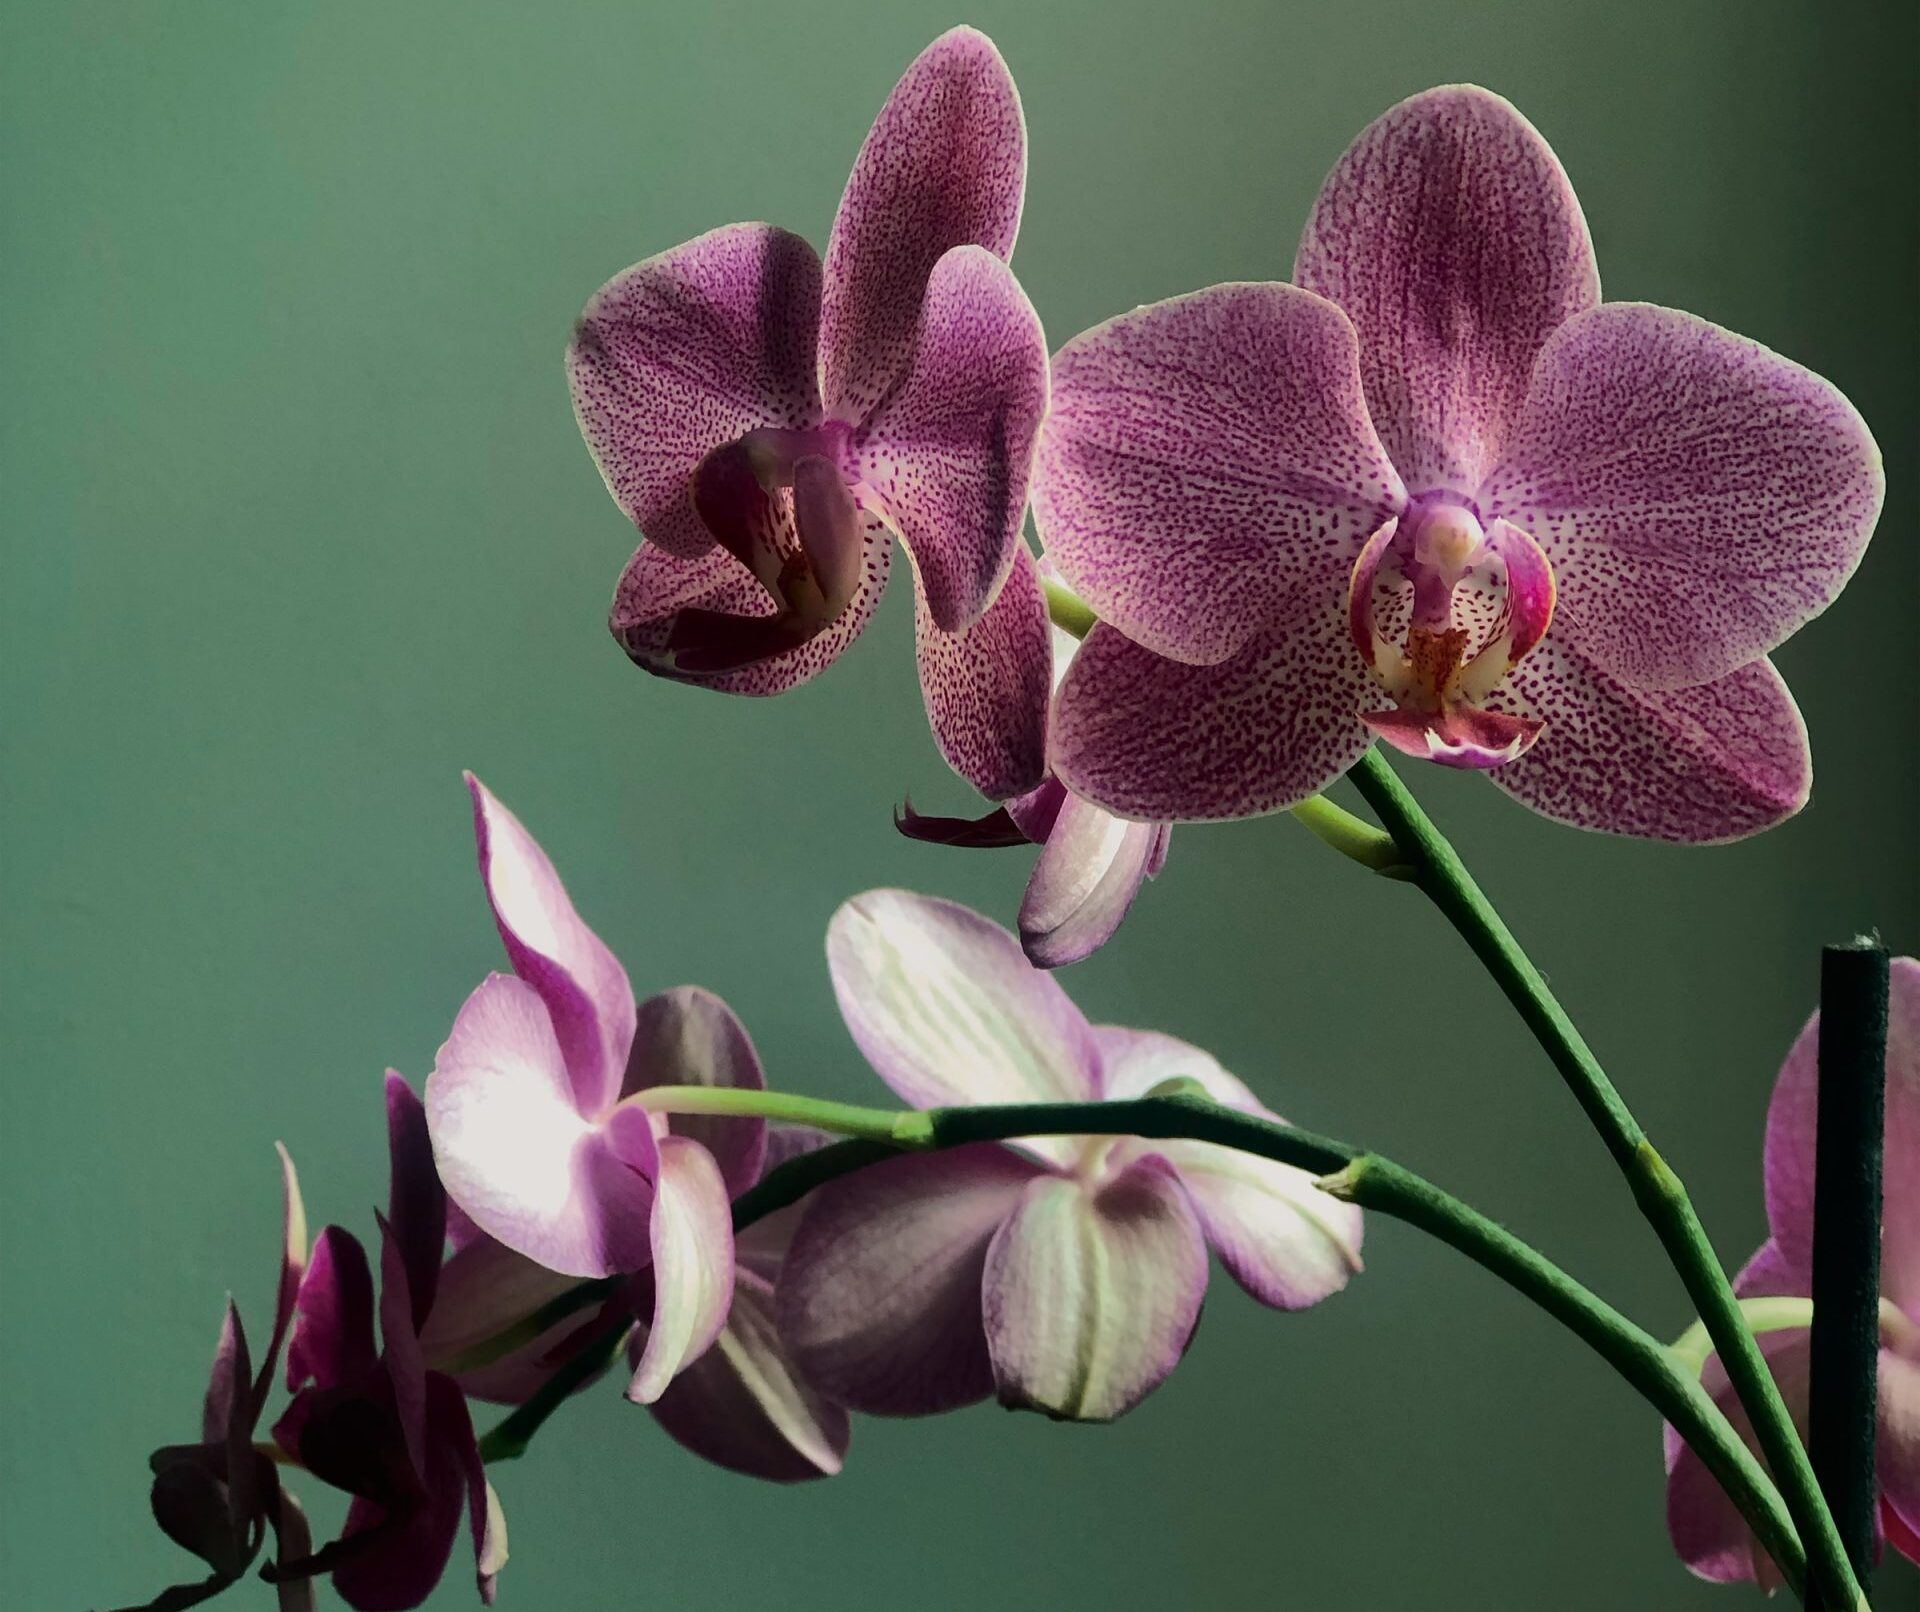 Orchid Meaning and Symbolism